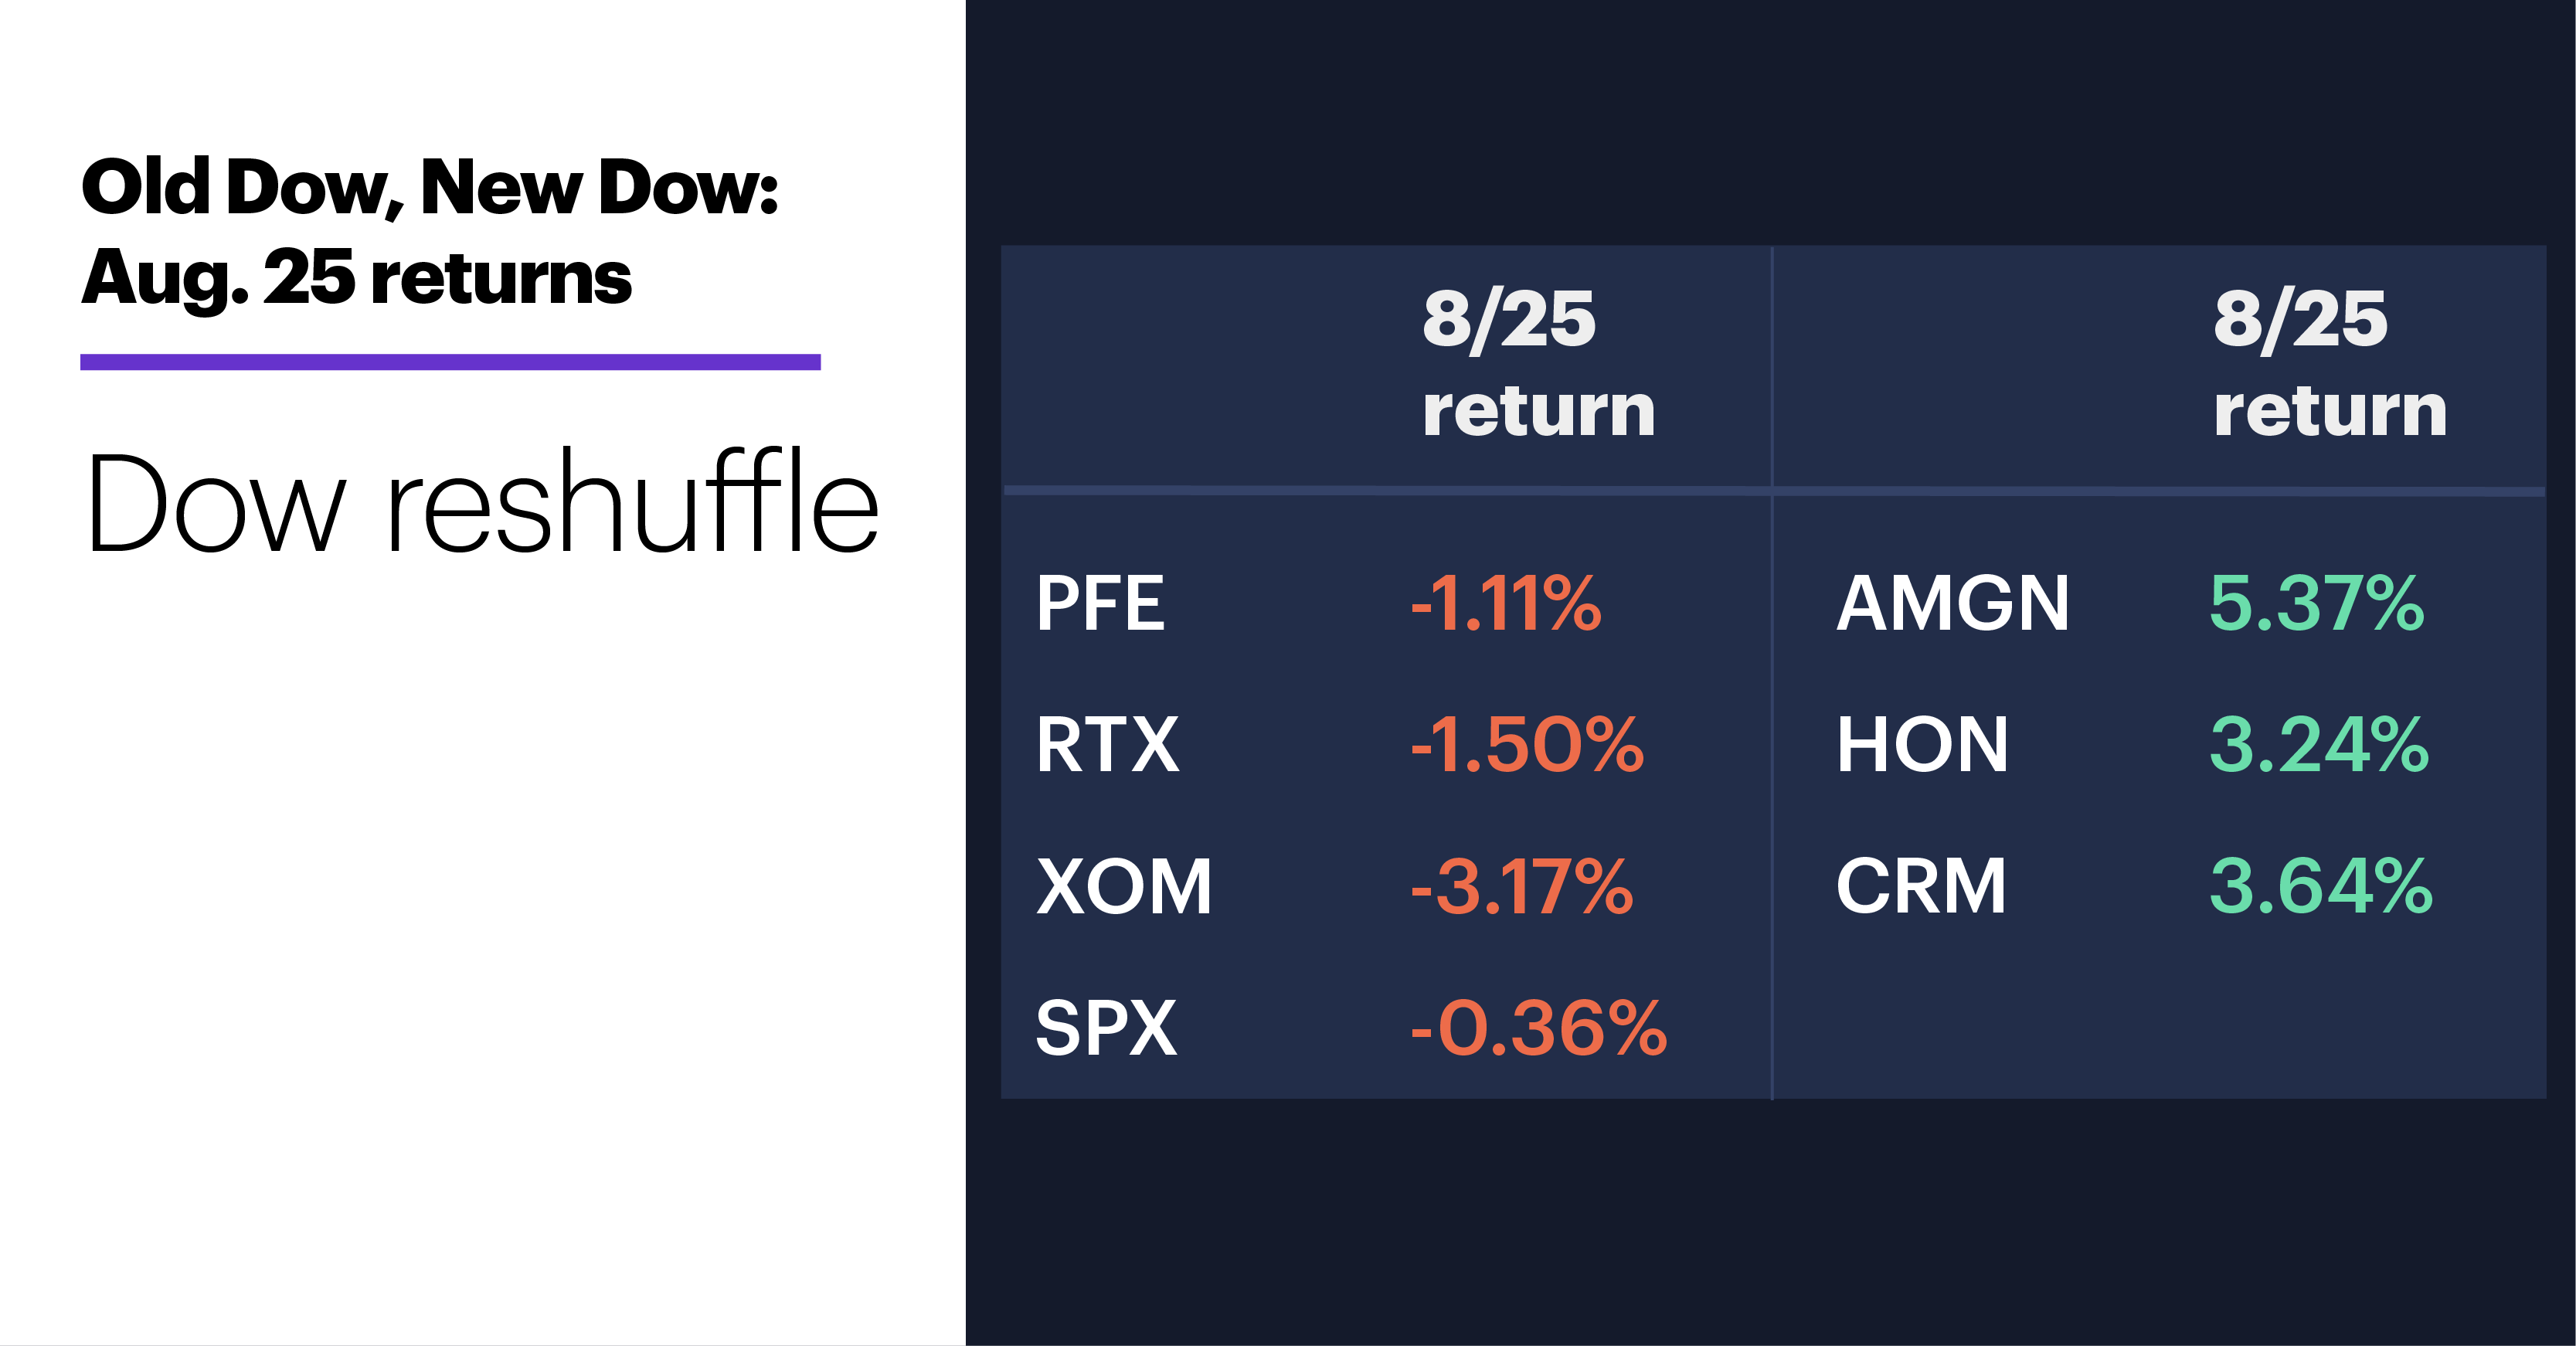 Chart 1: Old Dow, New Dow: Aug. 25 returns. Dow reshuffle.